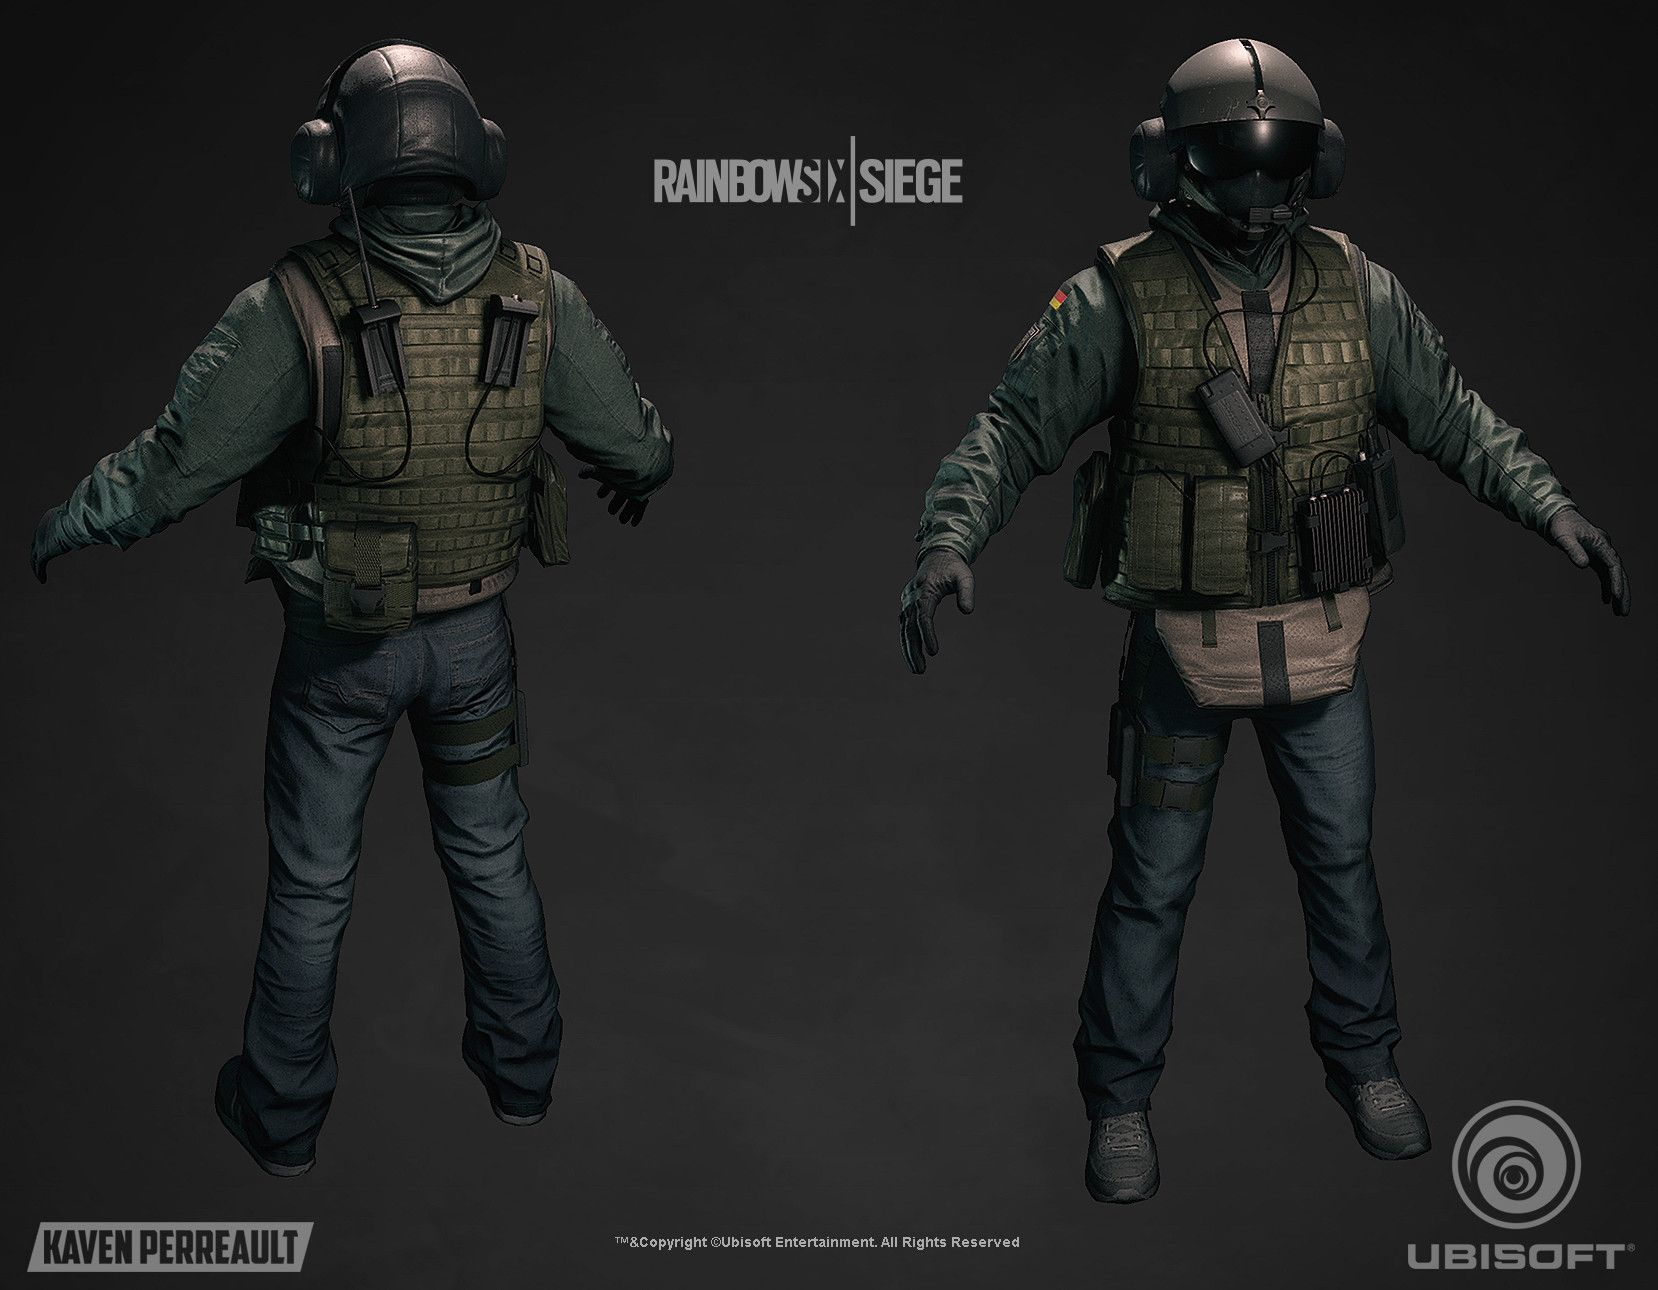 Rainbow Six:Siege jager elite Combat uniform Outfit cosplay no shoes and helmet